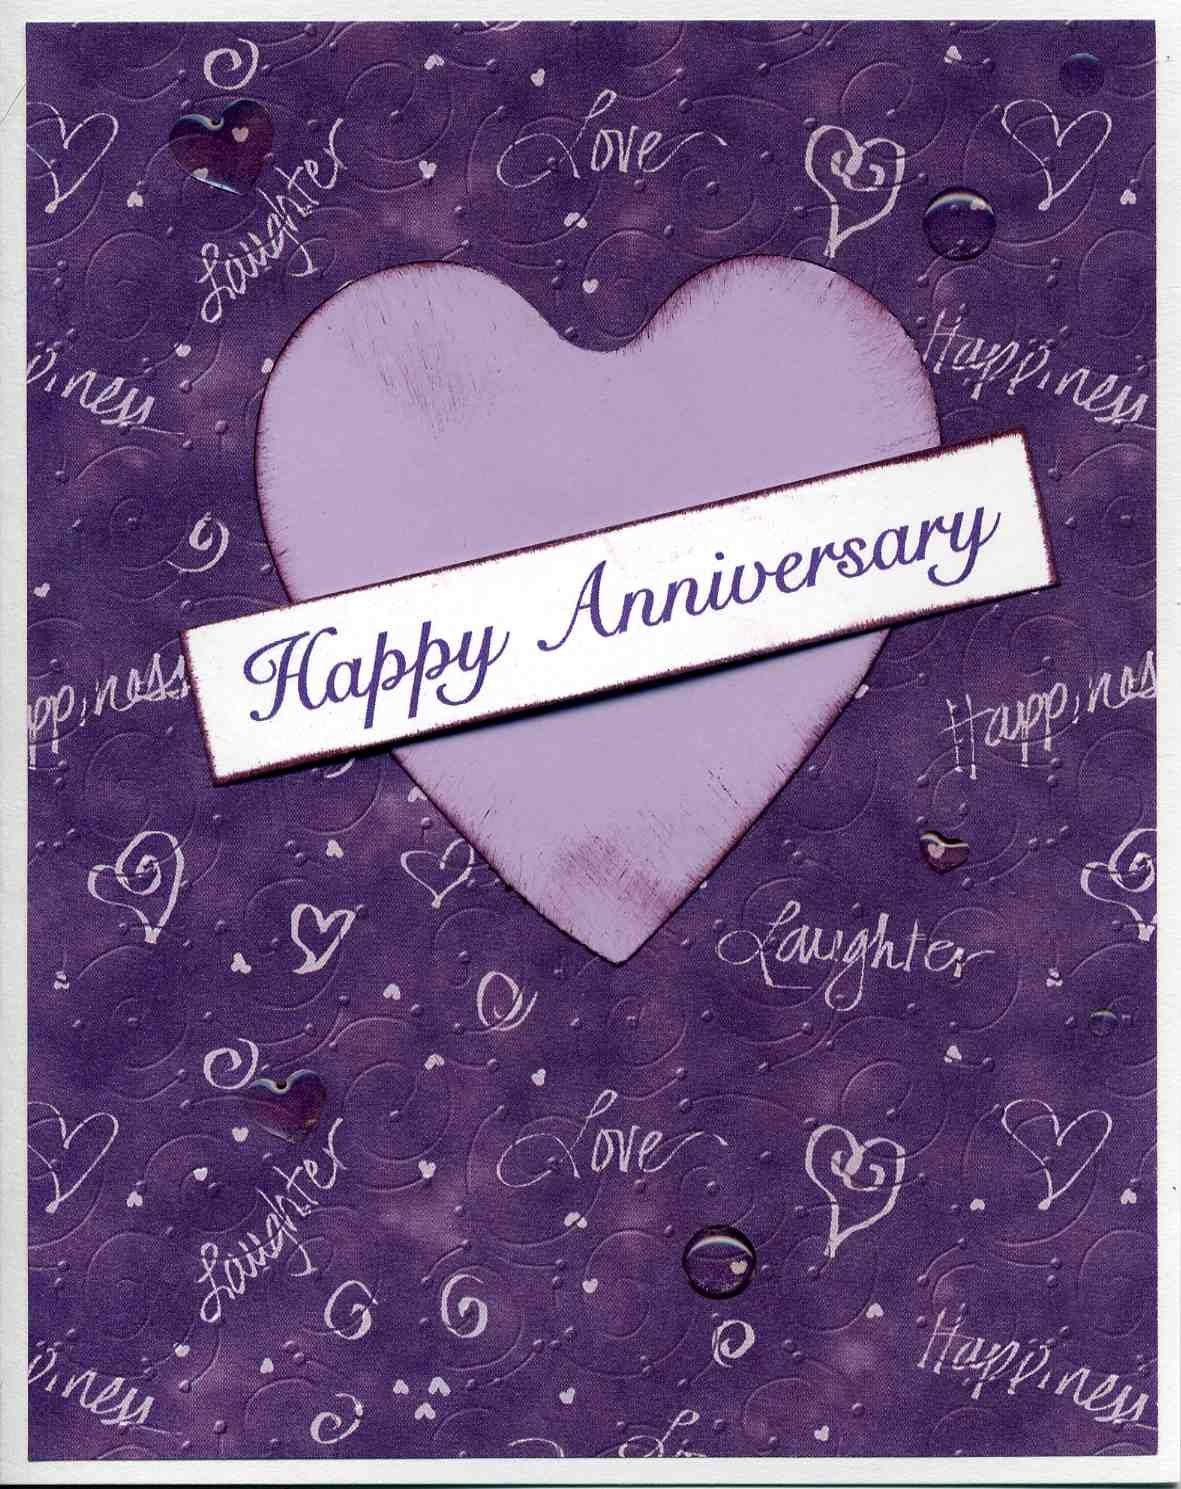 Happy anniversary graphics up in the sky look its a bird handmade purple color anniversary card with banner that says happy anniversary on front optional couples names on the front in place of happy anniversary kristyandbryce Images